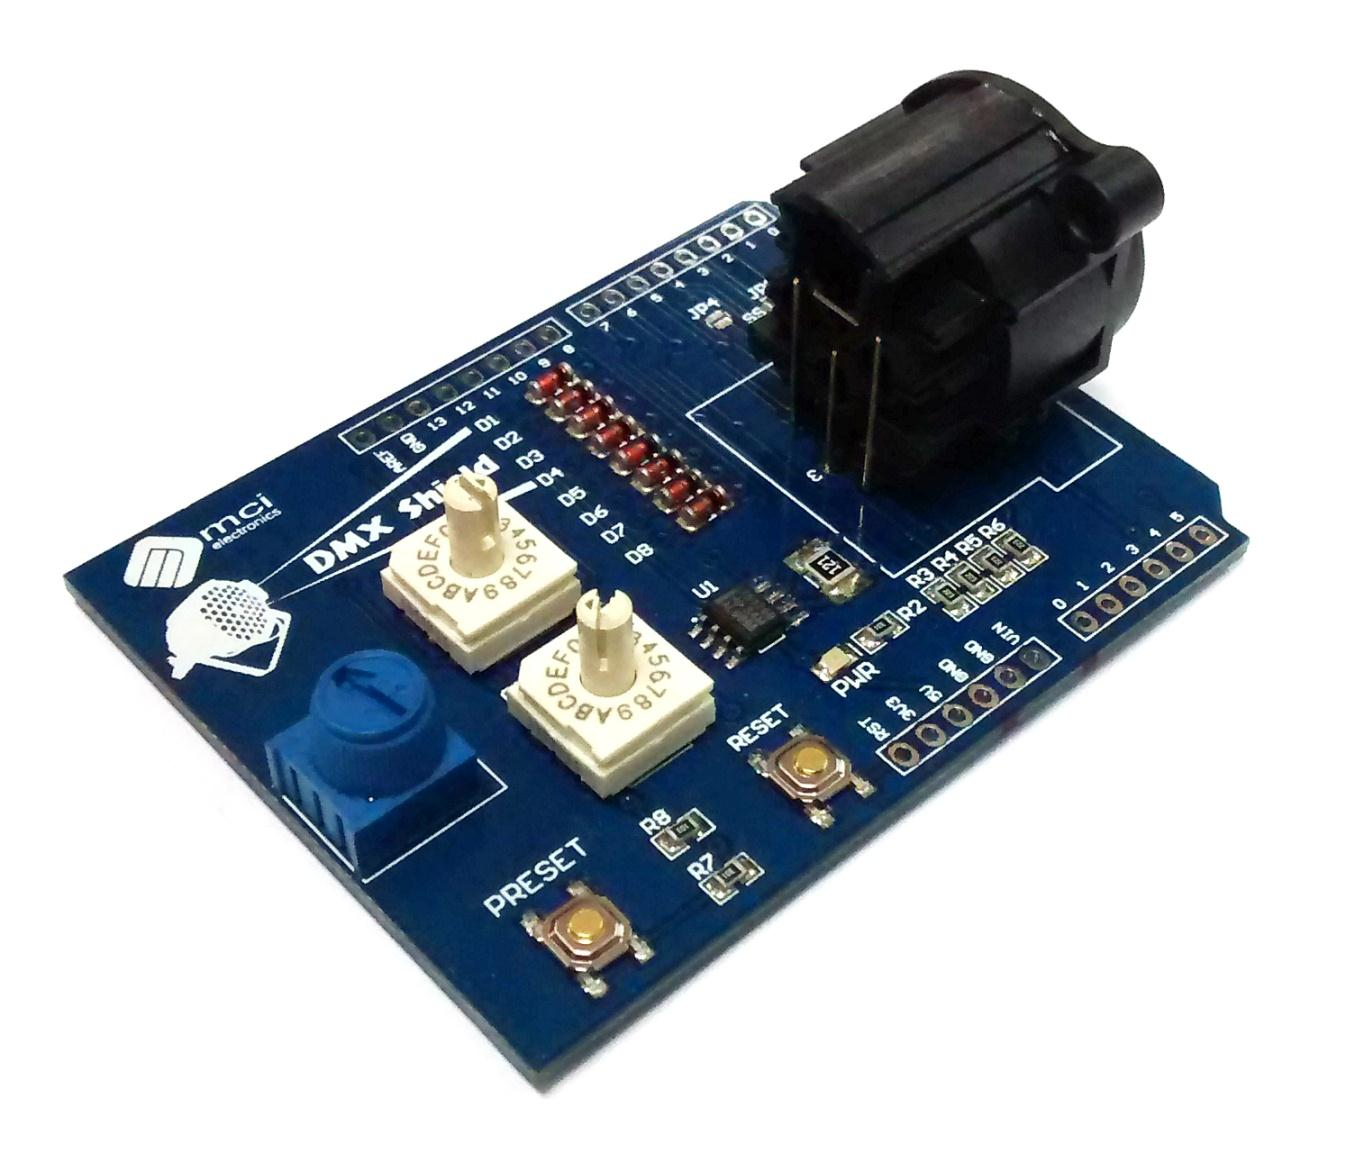 MANUAL DE USUARIO ARDUINO DMX MASTER